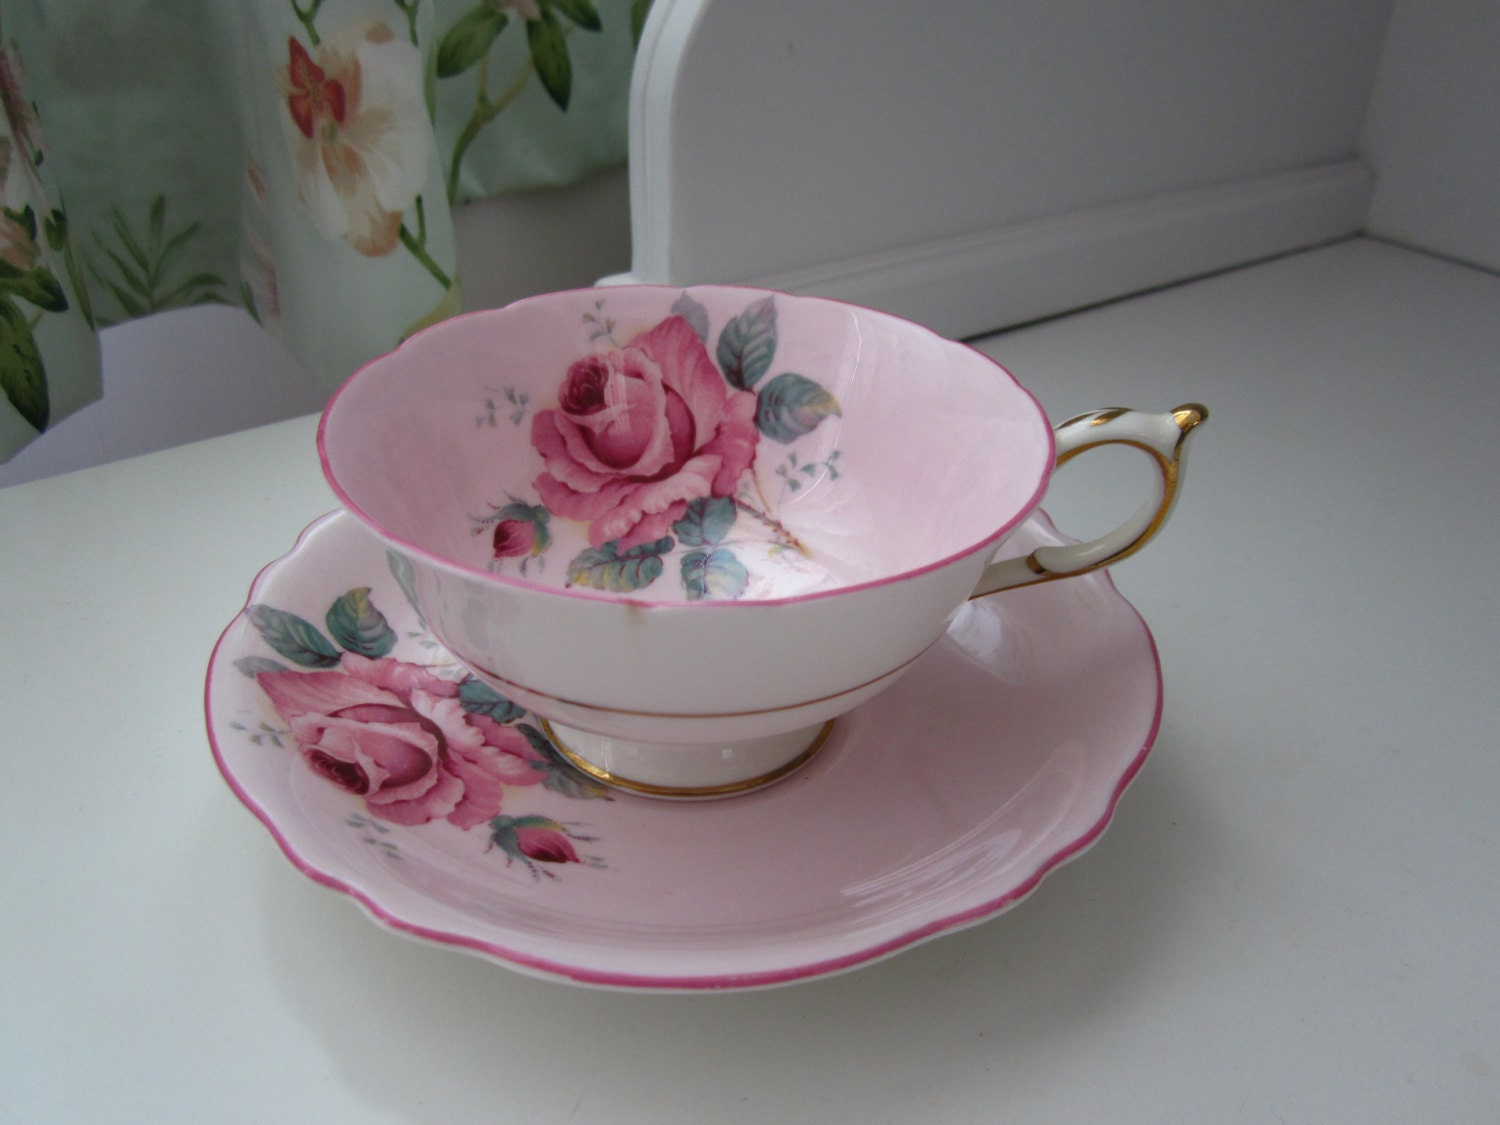 Find great deals on eBay for tea cup saucer pink. Shop with confidence.